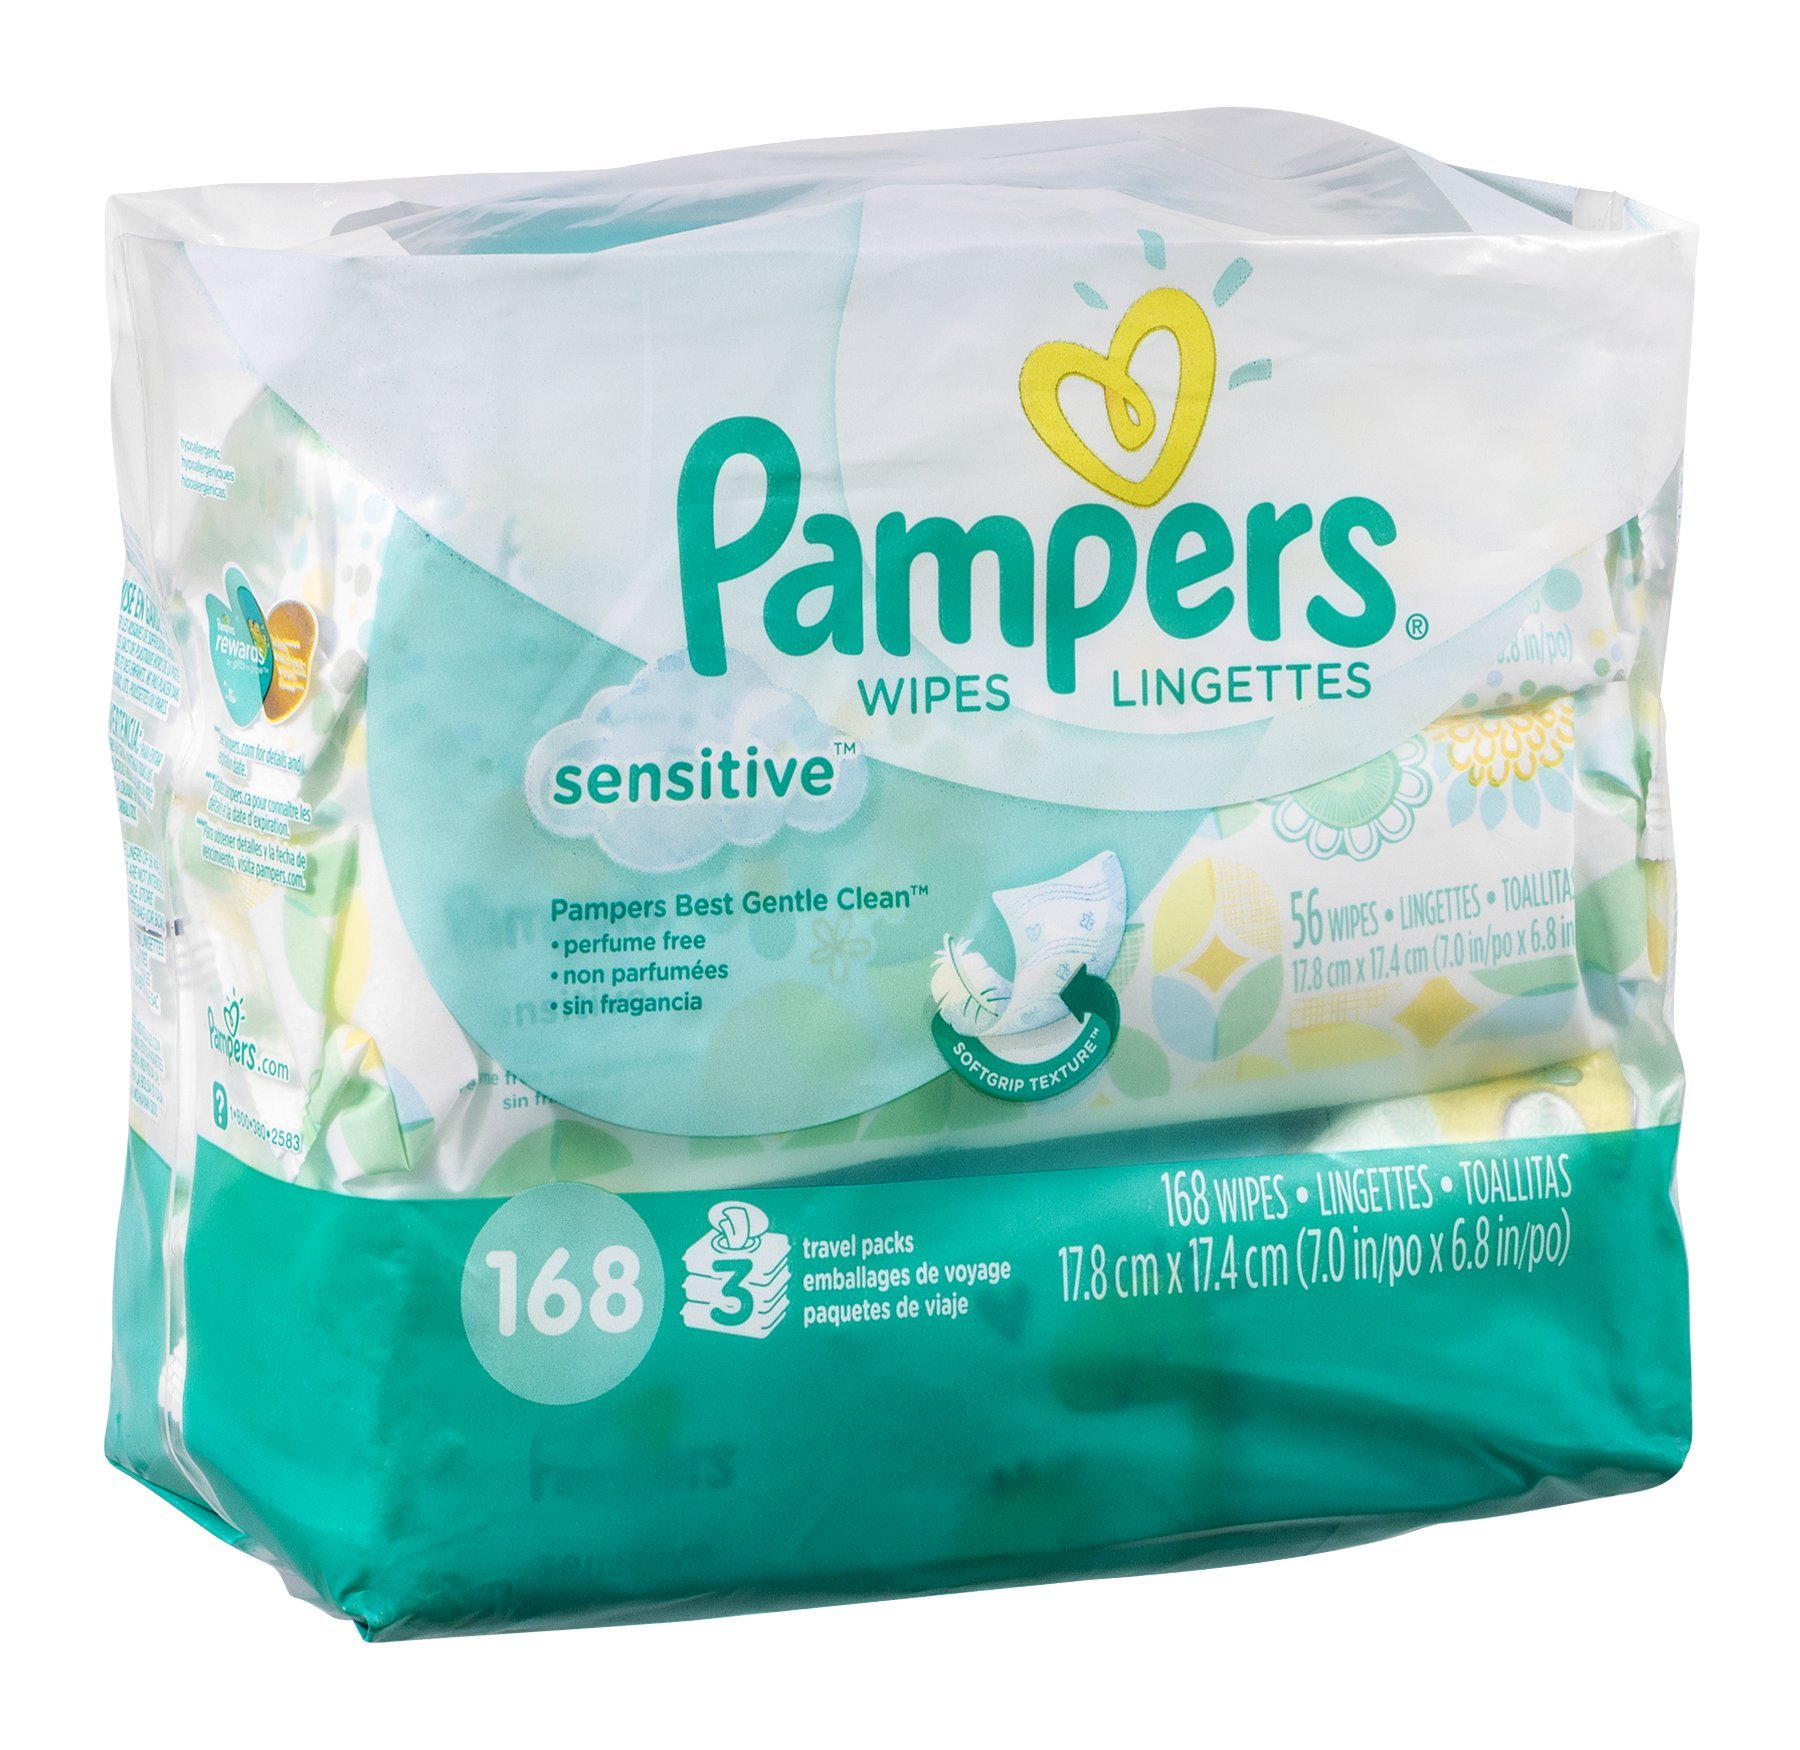 Pampers Sensitive Wipes Travel Packs 168 CT (Pack of 12)